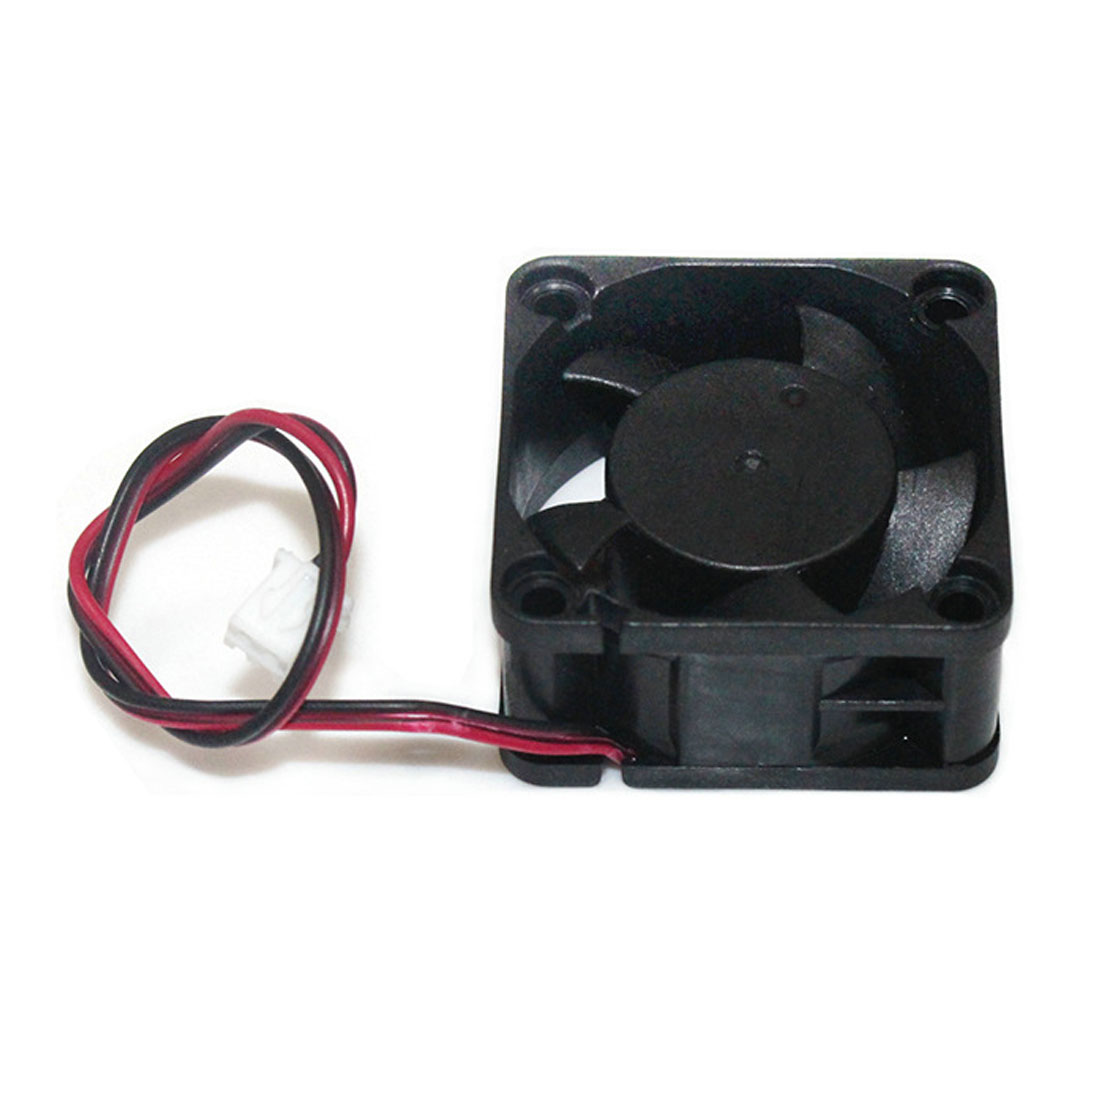 DC 4020 <font><b>5V</b></font> 12V 24V Computer CPU Cooler Mini Cooling <font><b>Fan</b></font> 40MM 40x40x20mm Small Exhaust <font><b>Fan</b></font> for 3D Printer 2pin 40x40x10/<font><b>20mm</b></font> image